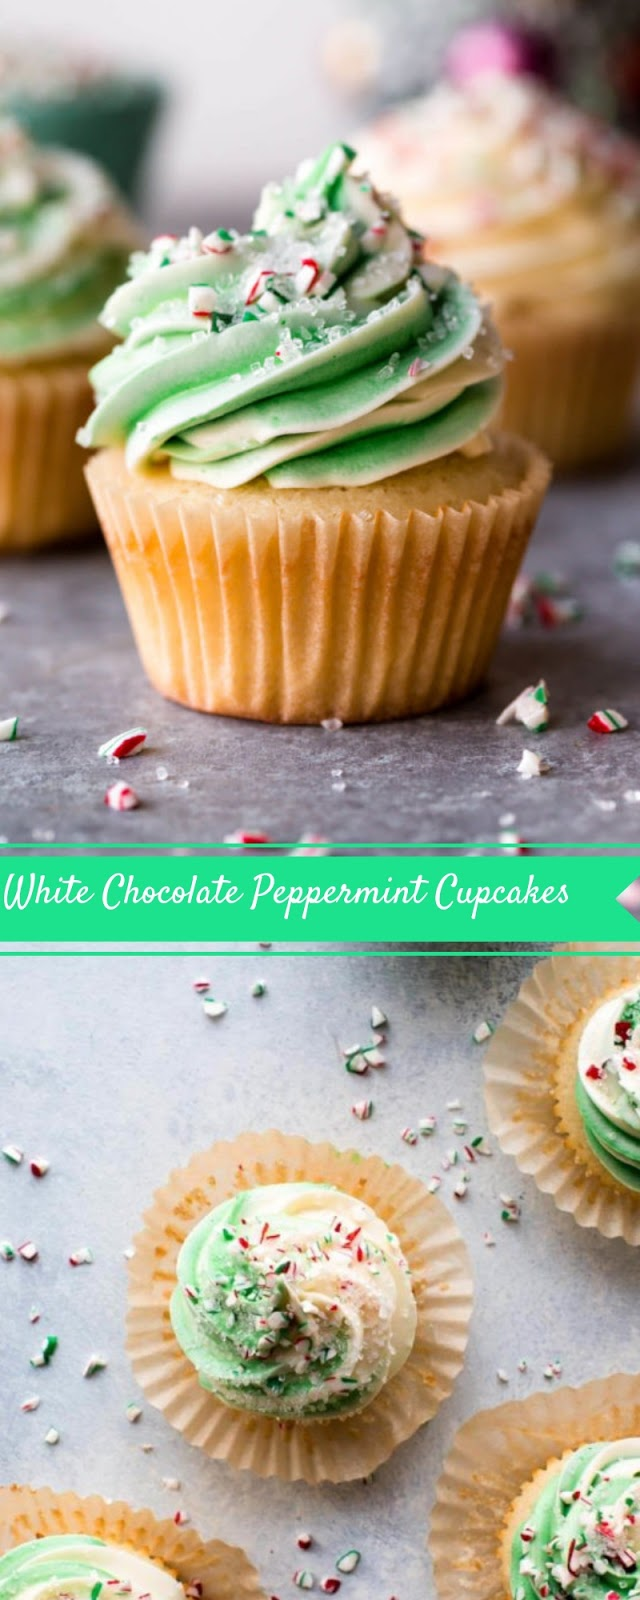 White Chocolate Peppermint Cupcakes